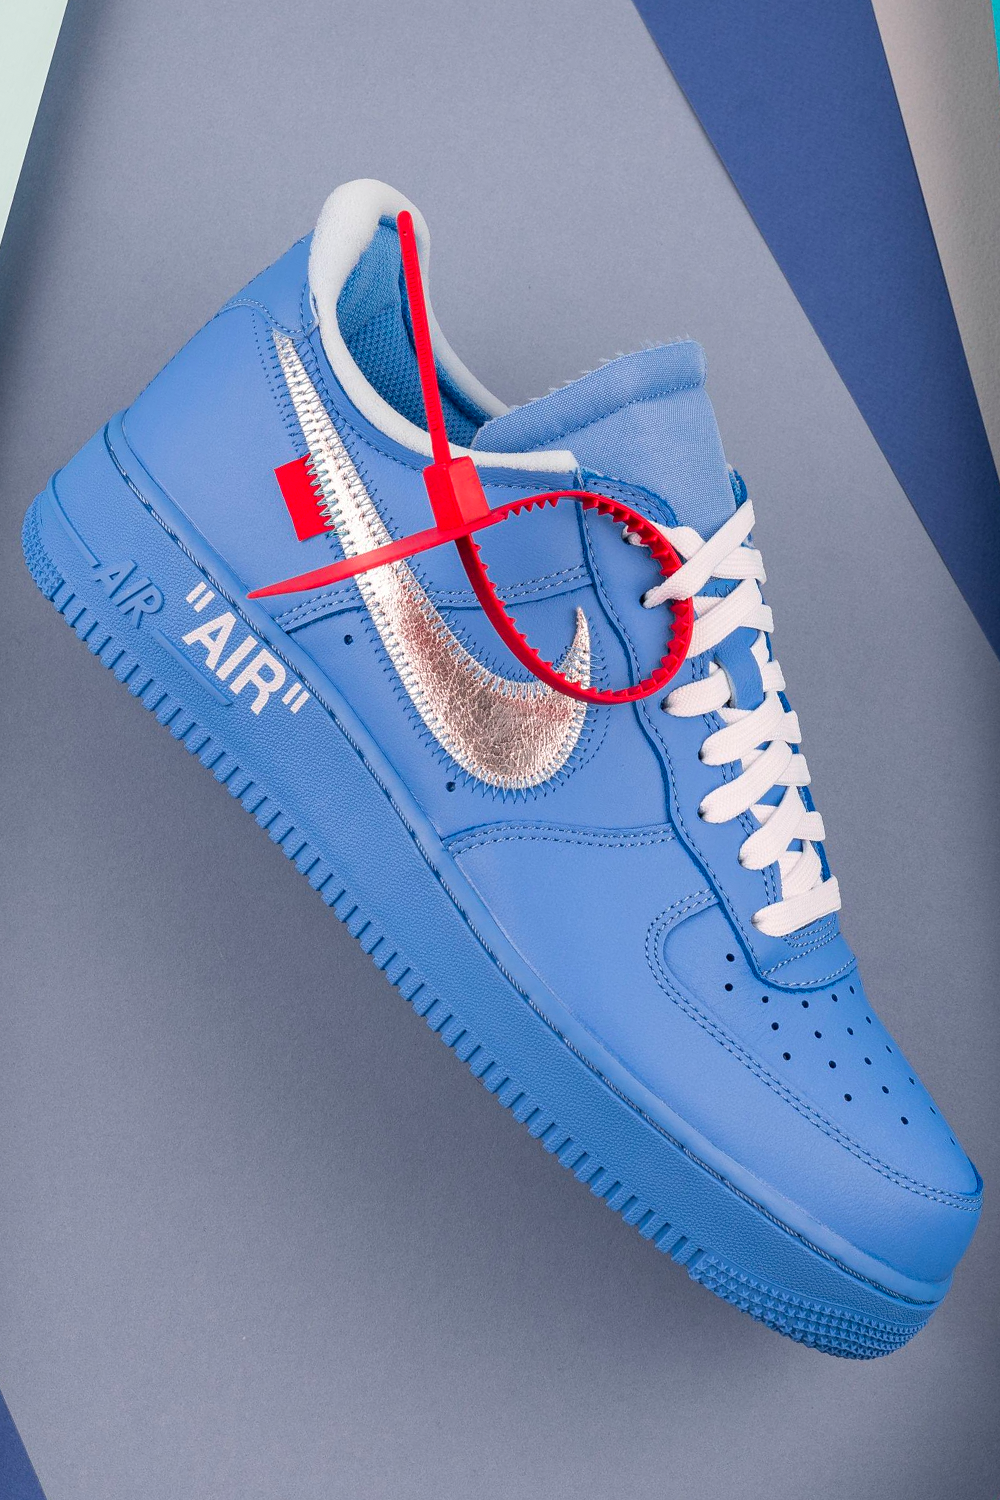 Nike Air Force 1 Low Off White Mca Ci1173 400 2020 In 2020 Nike Shoes Air Force Off White Shoes White Nike Shoes